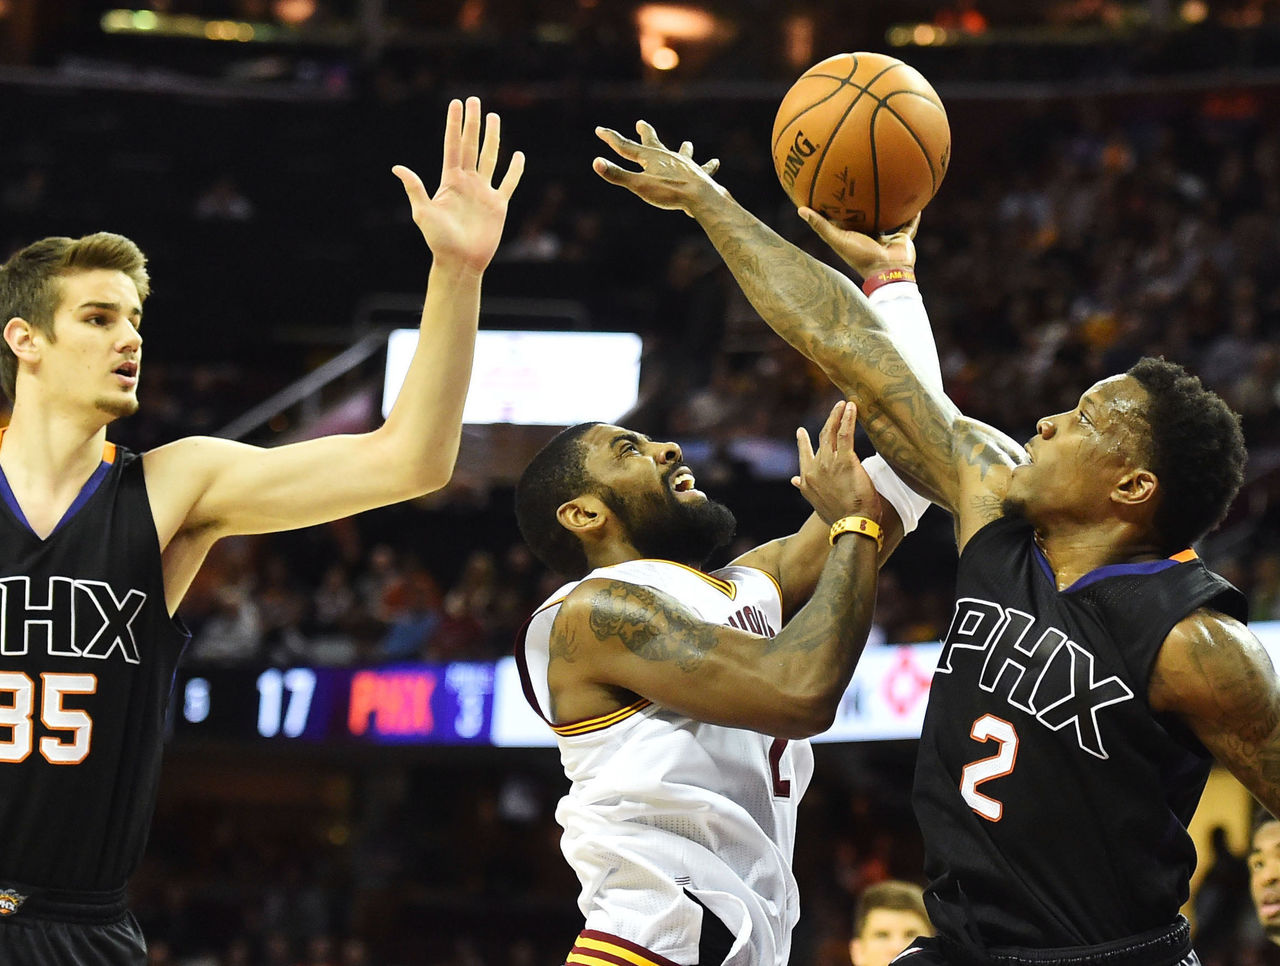 Cropped_2017-01-20t011207z_590466120_nocid_rtrmadp_3_nba-phoenix-suns-at-cleveland-cavaliers